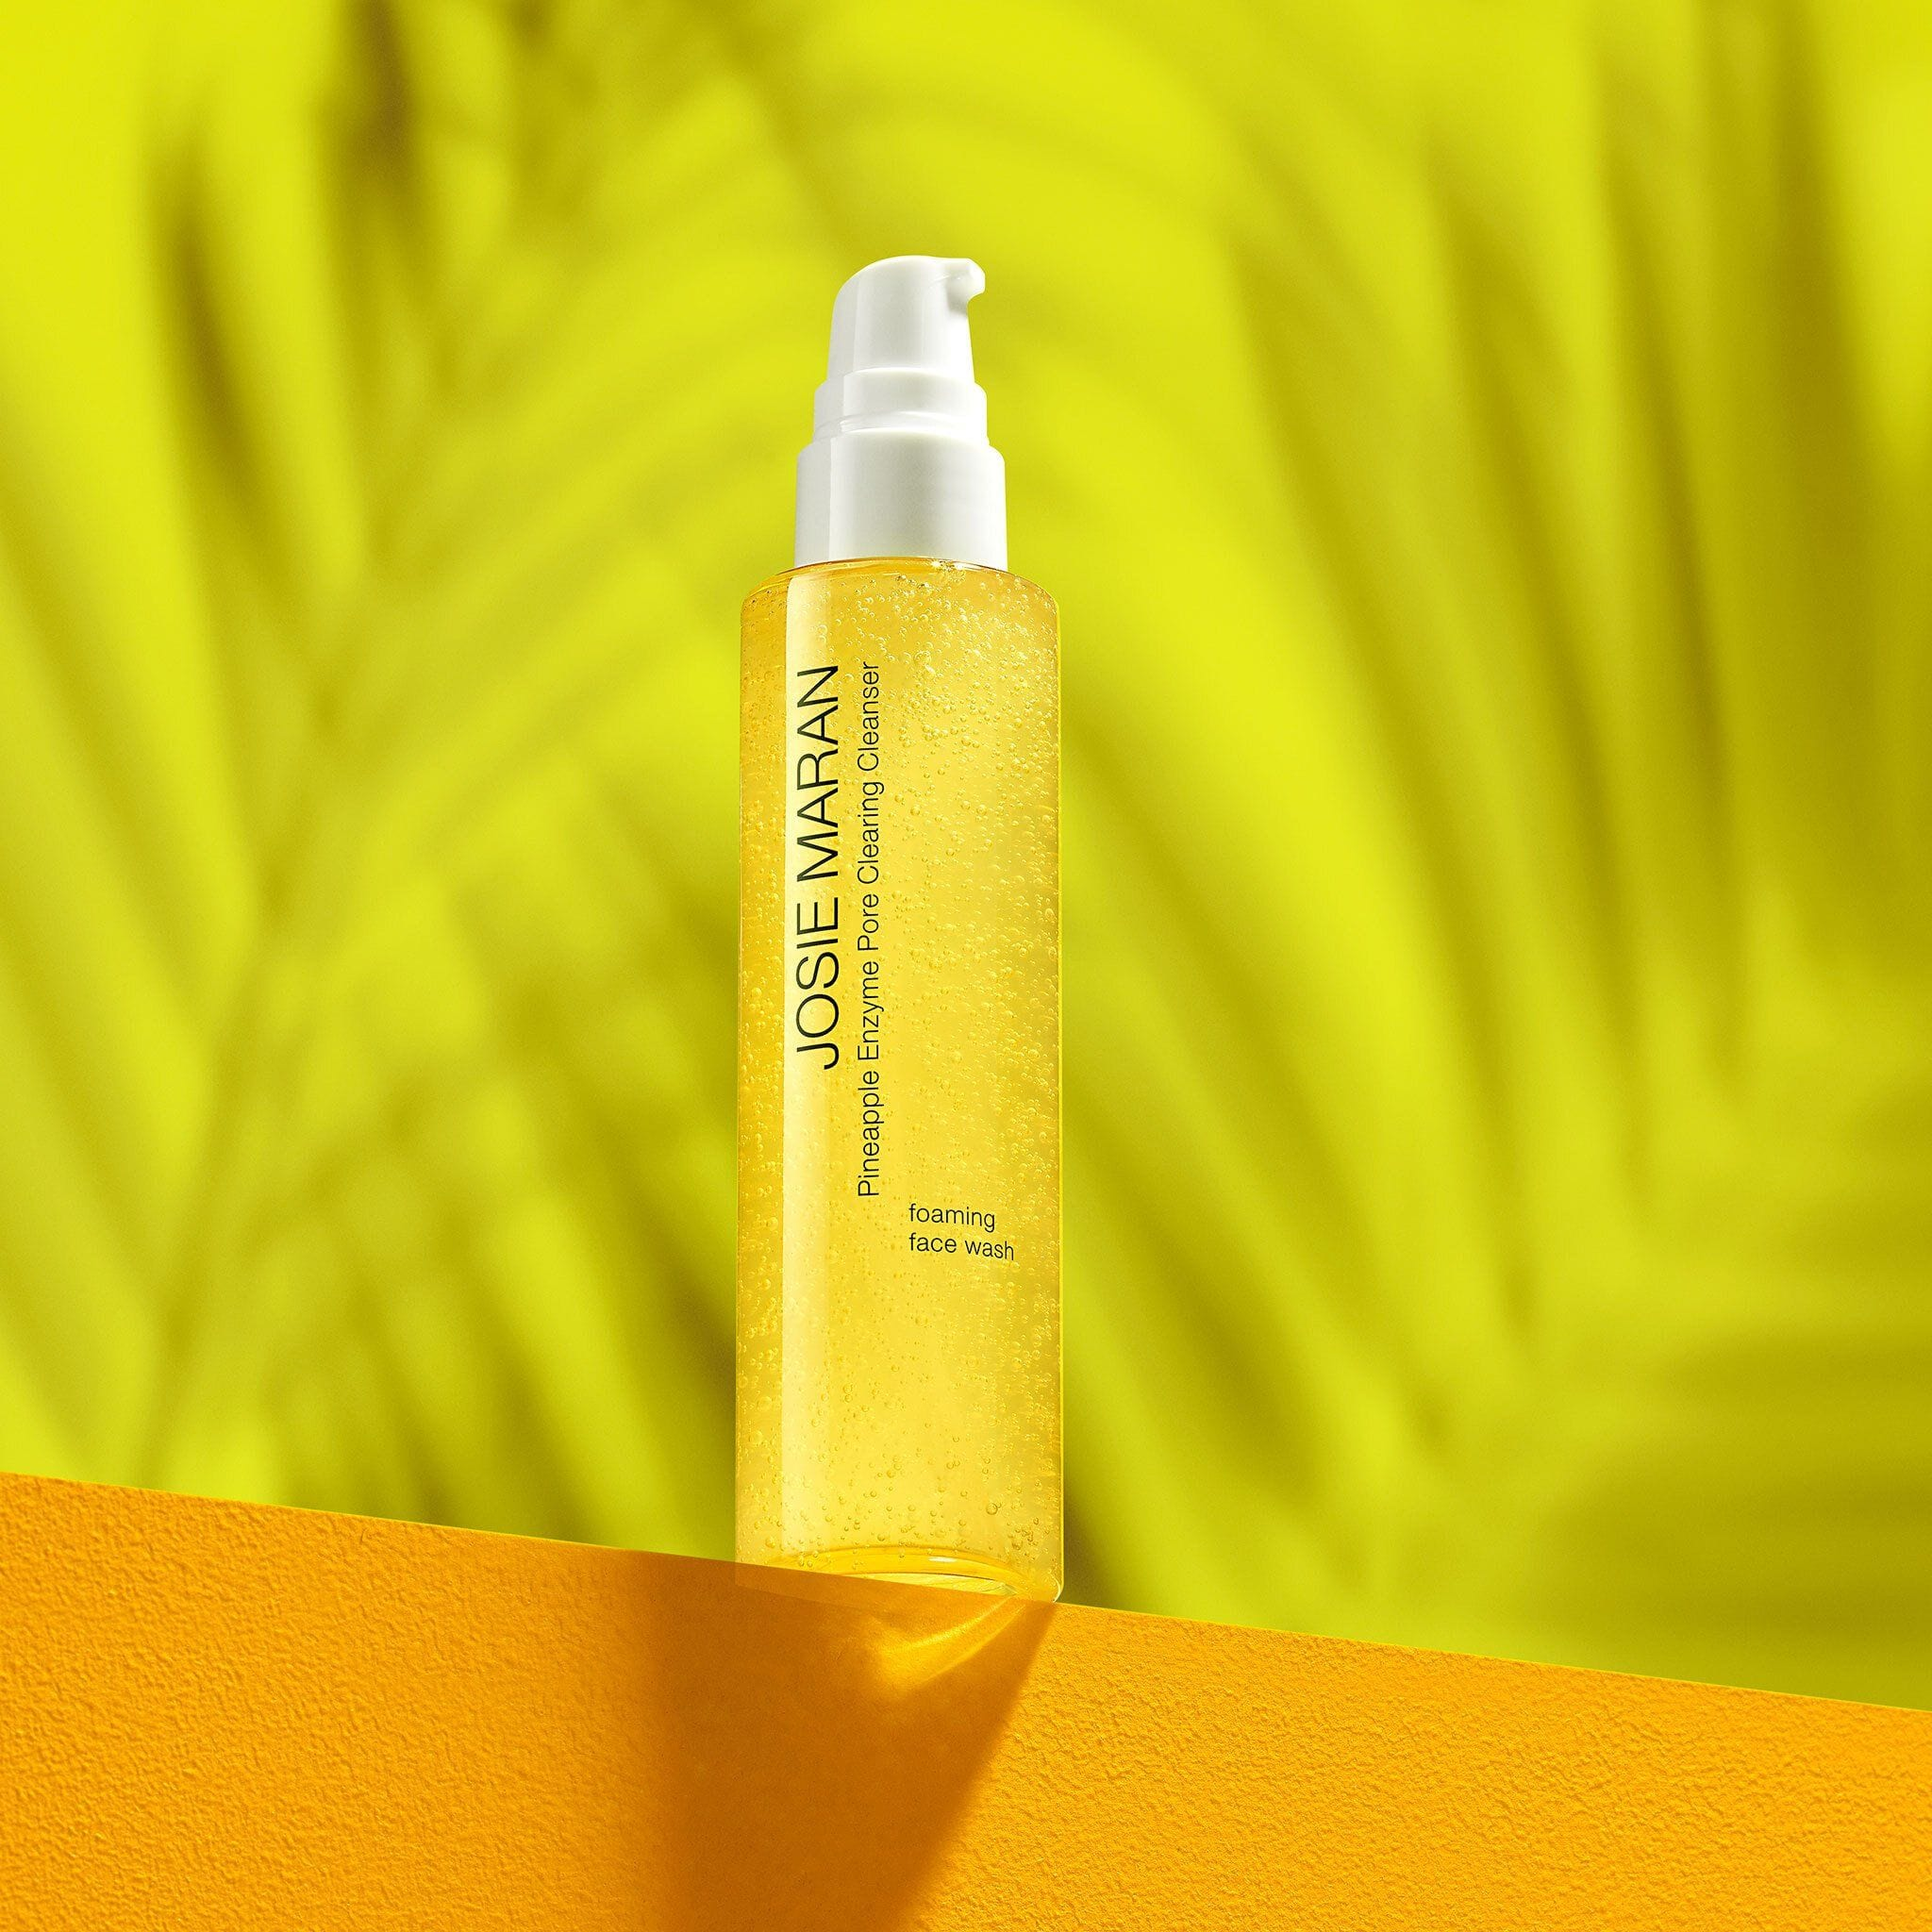 josiemarancosmetics.com - Pineapple Enzyme Pore Clearing Cleanser